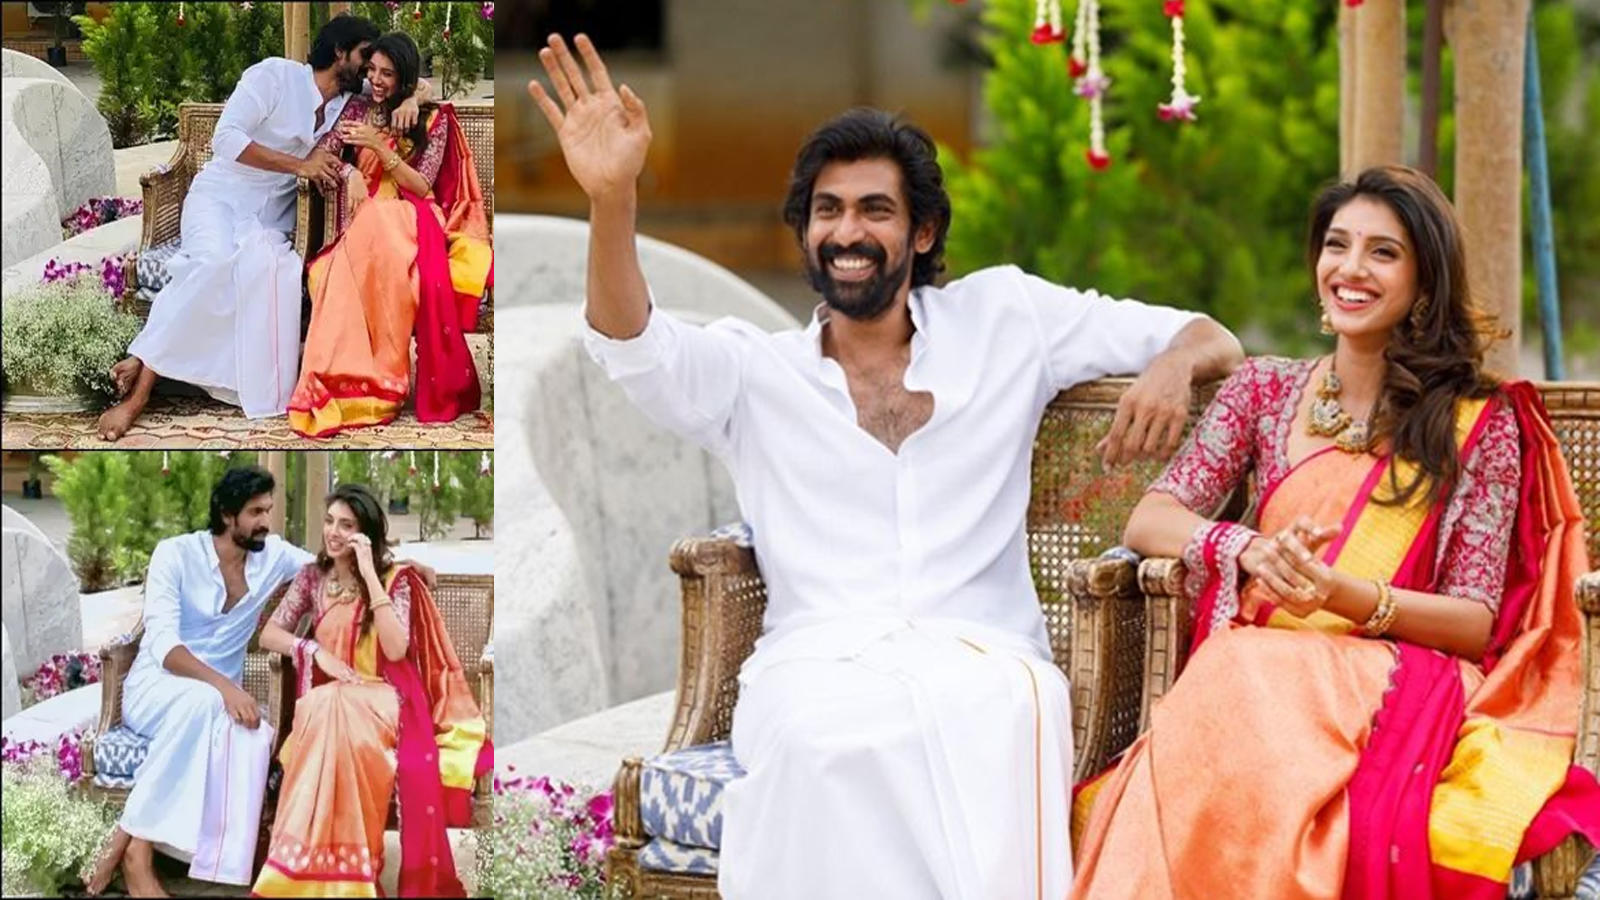 rana-daggubati-to-tie-the-knot-with-fiance-miheeka-bajaj-in-august-confirms-actors-father